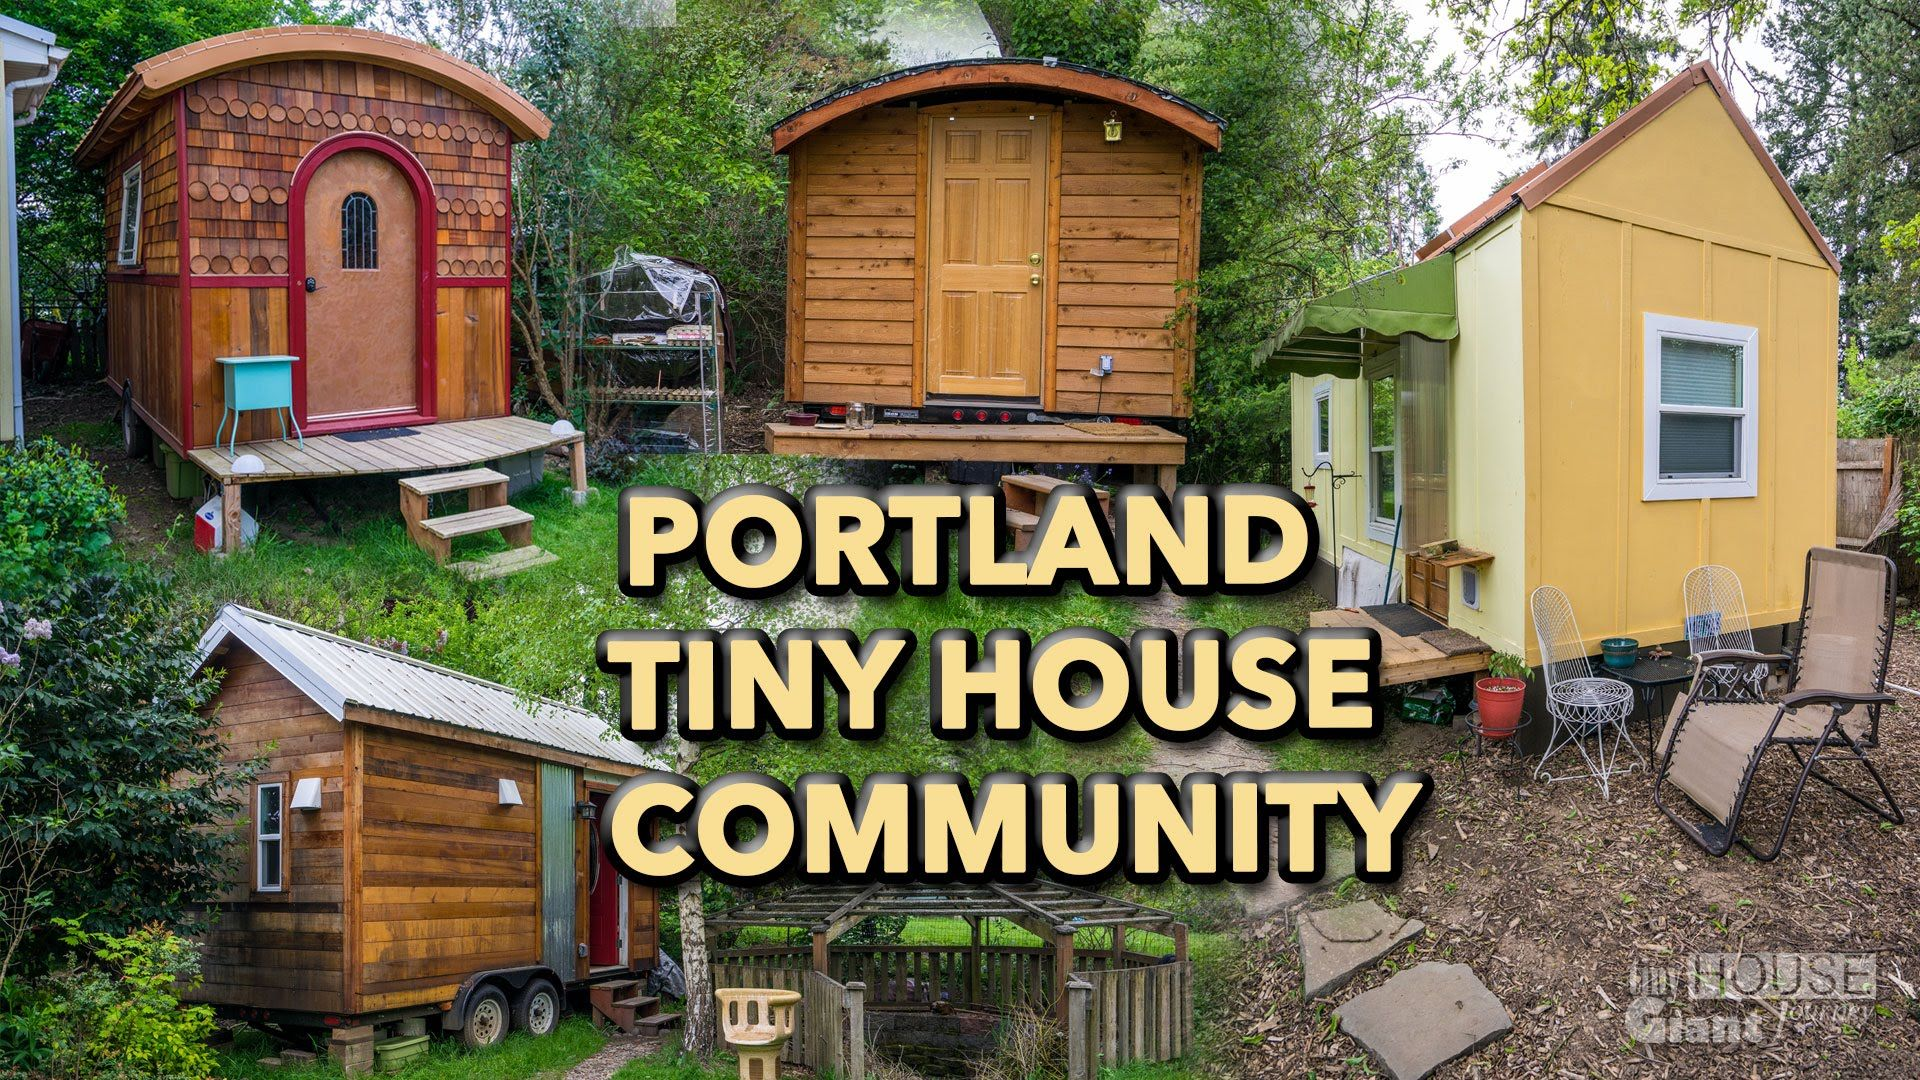 Tiny House Community In Portland Tiny House Community Small House Communities Diy Tiny House